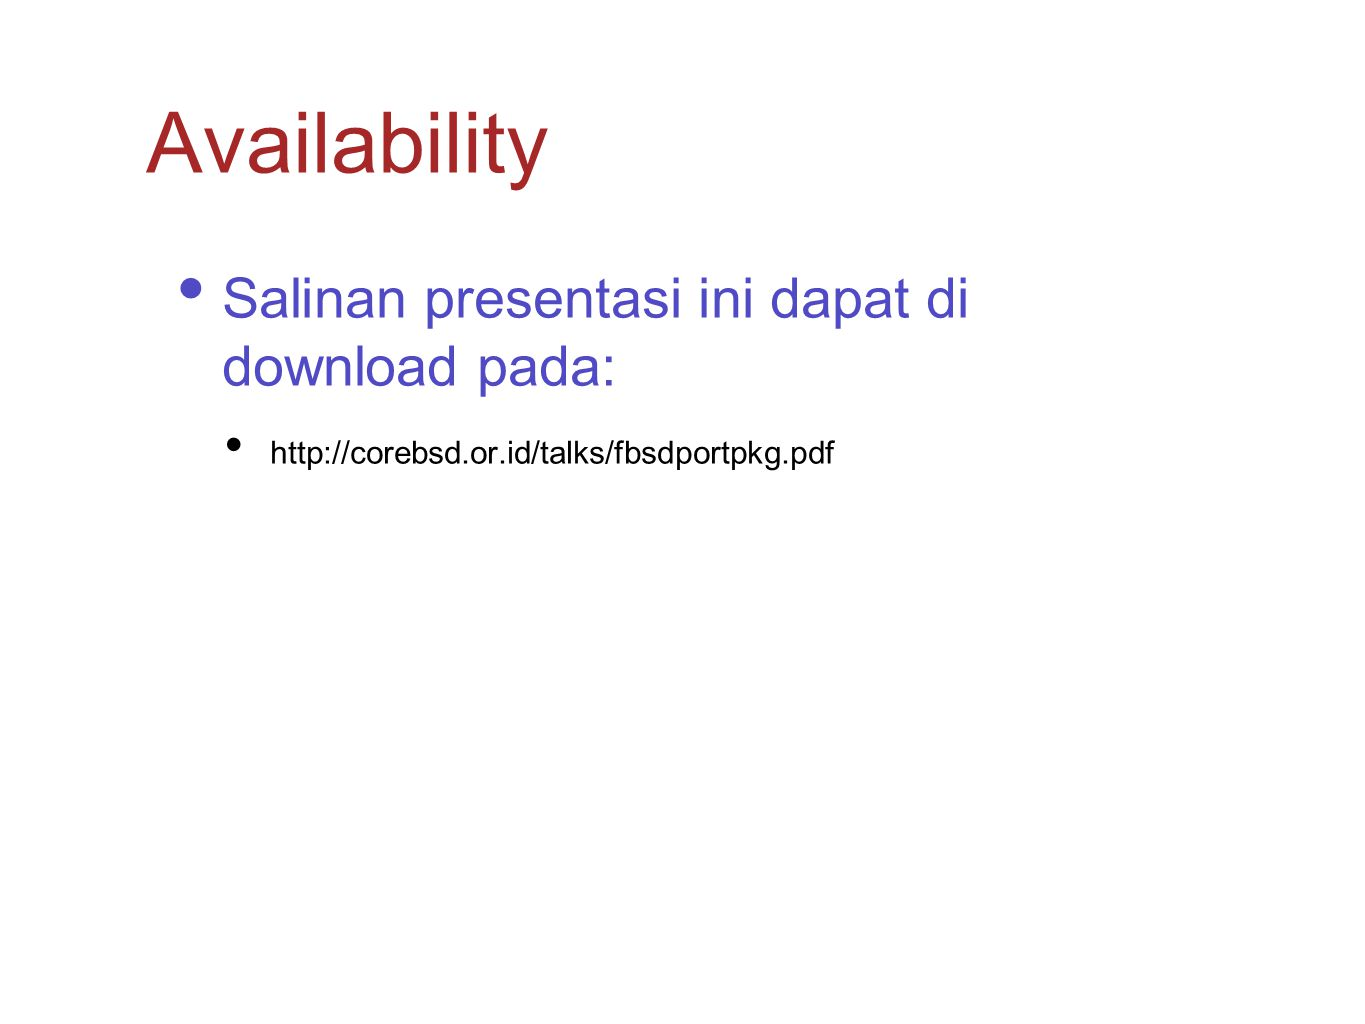 Salinan presentasi ini dapat di download pada: http://corebsd.or.id/talks/fbsdportpkg.pdf Availability